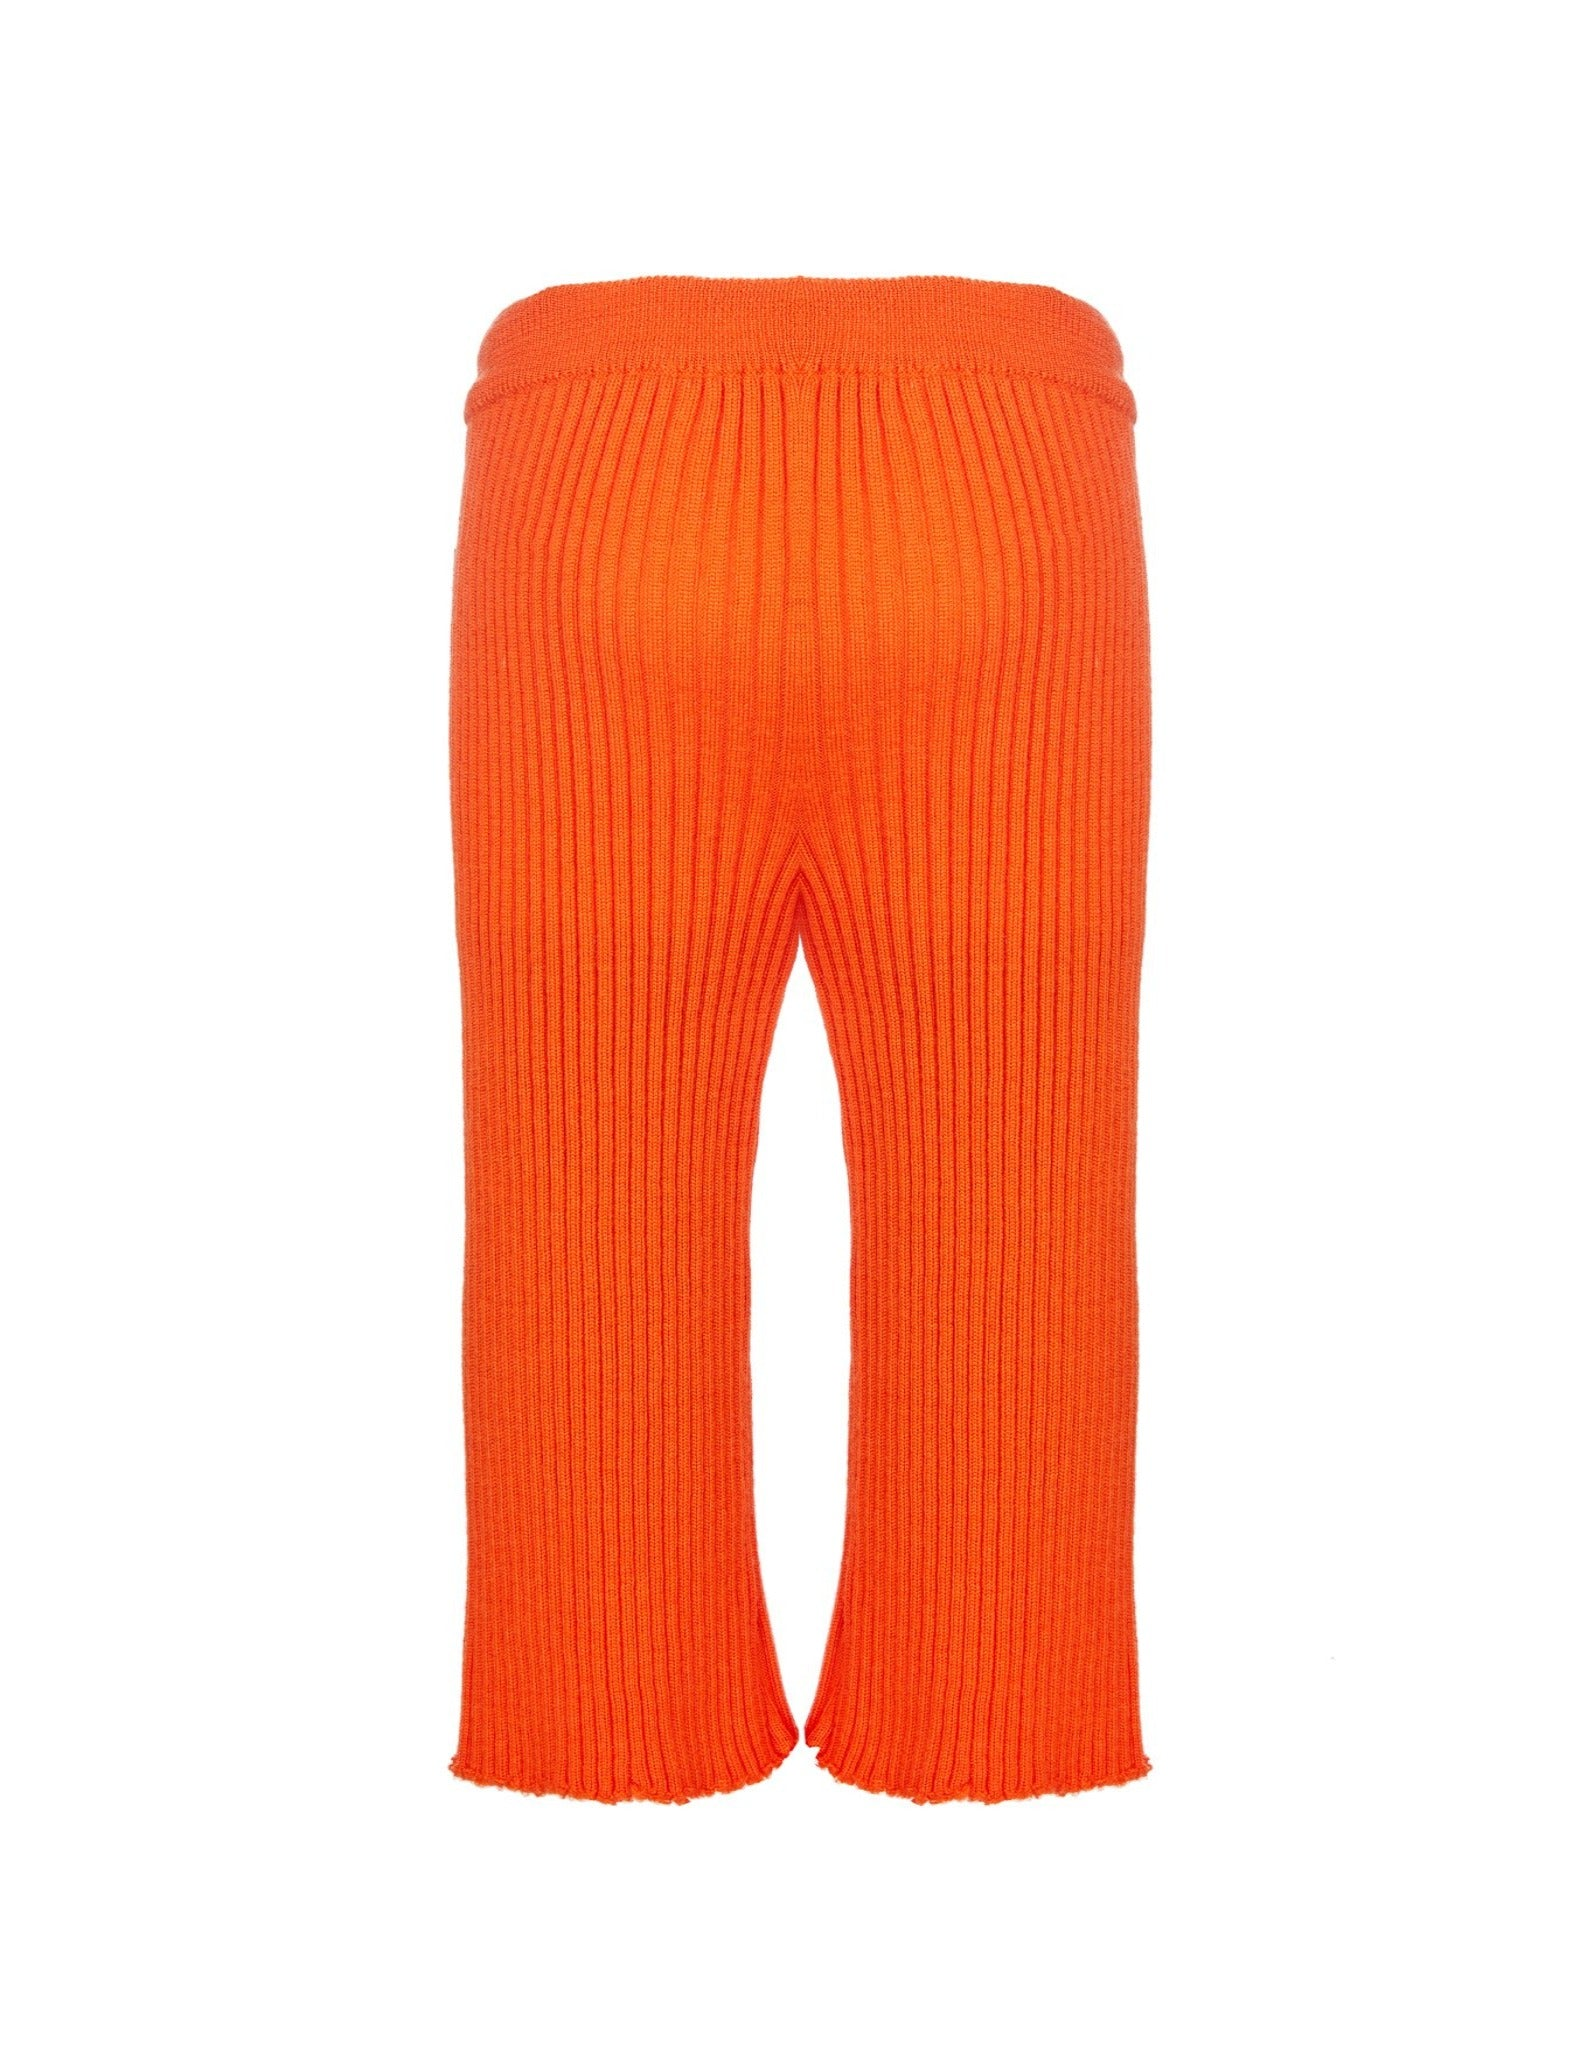 WAISTBAND TROUSERS IN ORANGE